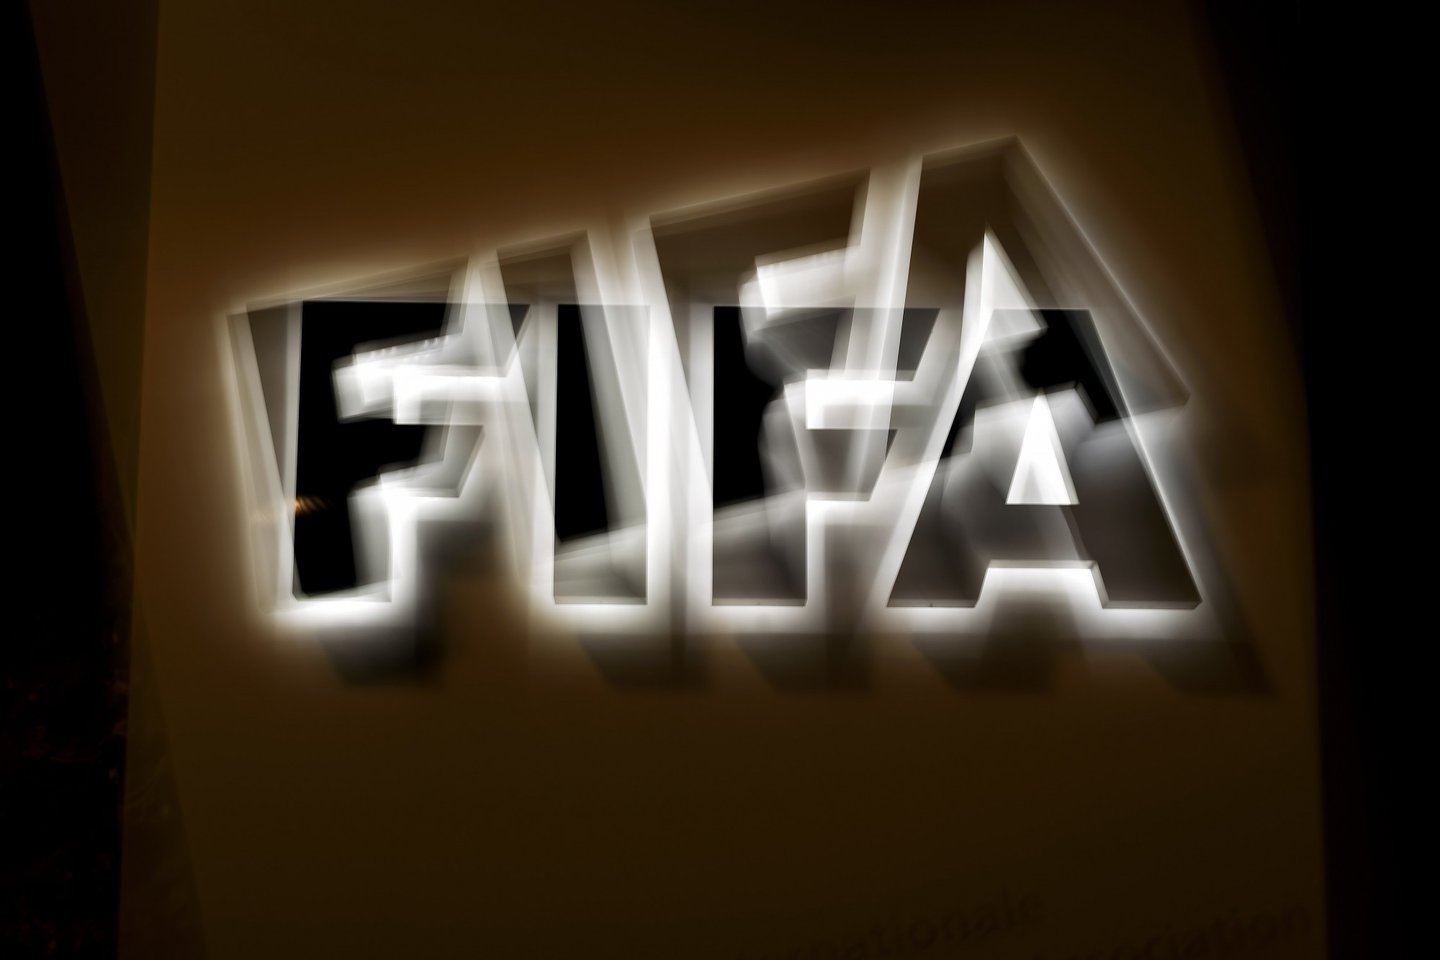 This long exposure photo taken on October 8, 2015 shows the FIFA logo at the entrance sign of the FIFA world headquarters in Zurich. FIFA's ethics watchdog on Thursday suspended the two most powerful men in football, Sepp Blatter and Michel Platini, for 90 days in a sensational new blow to the sport's scandal-tainted governing body. Issa Hiyatou head of the Confederation of African Football, a Blatter ally, was put in charge of the multi-billion dollar body. AFP PHOTO / FABRICE COFFRINI (Photo credit should read FABRICE COFFRINI/AFP/Getty Images)